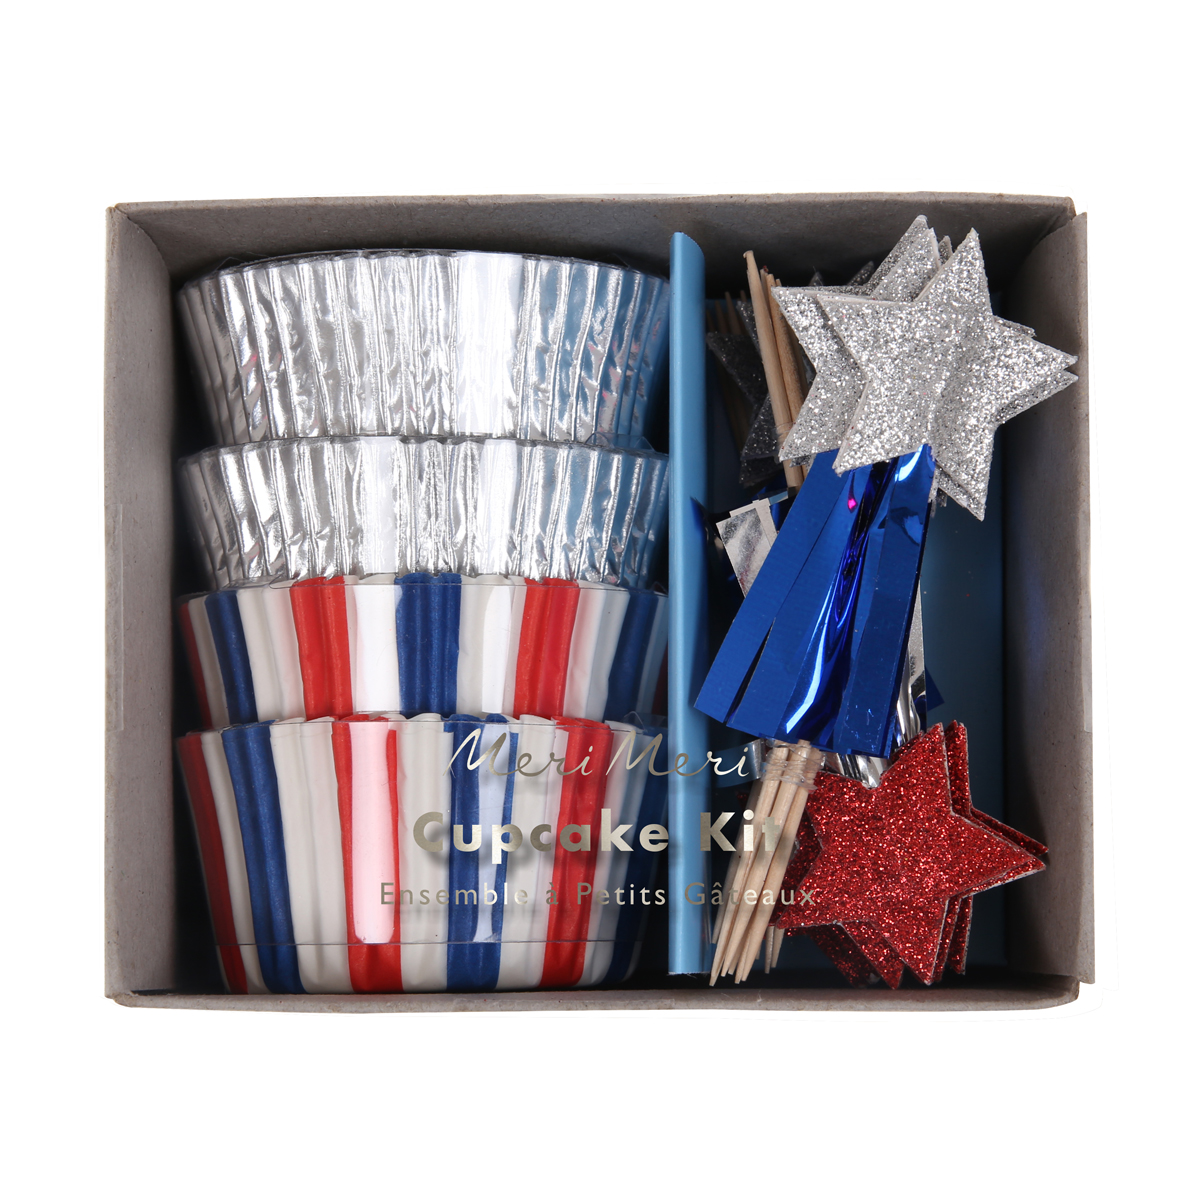 Meri Meri July 4th Cupcake Kit